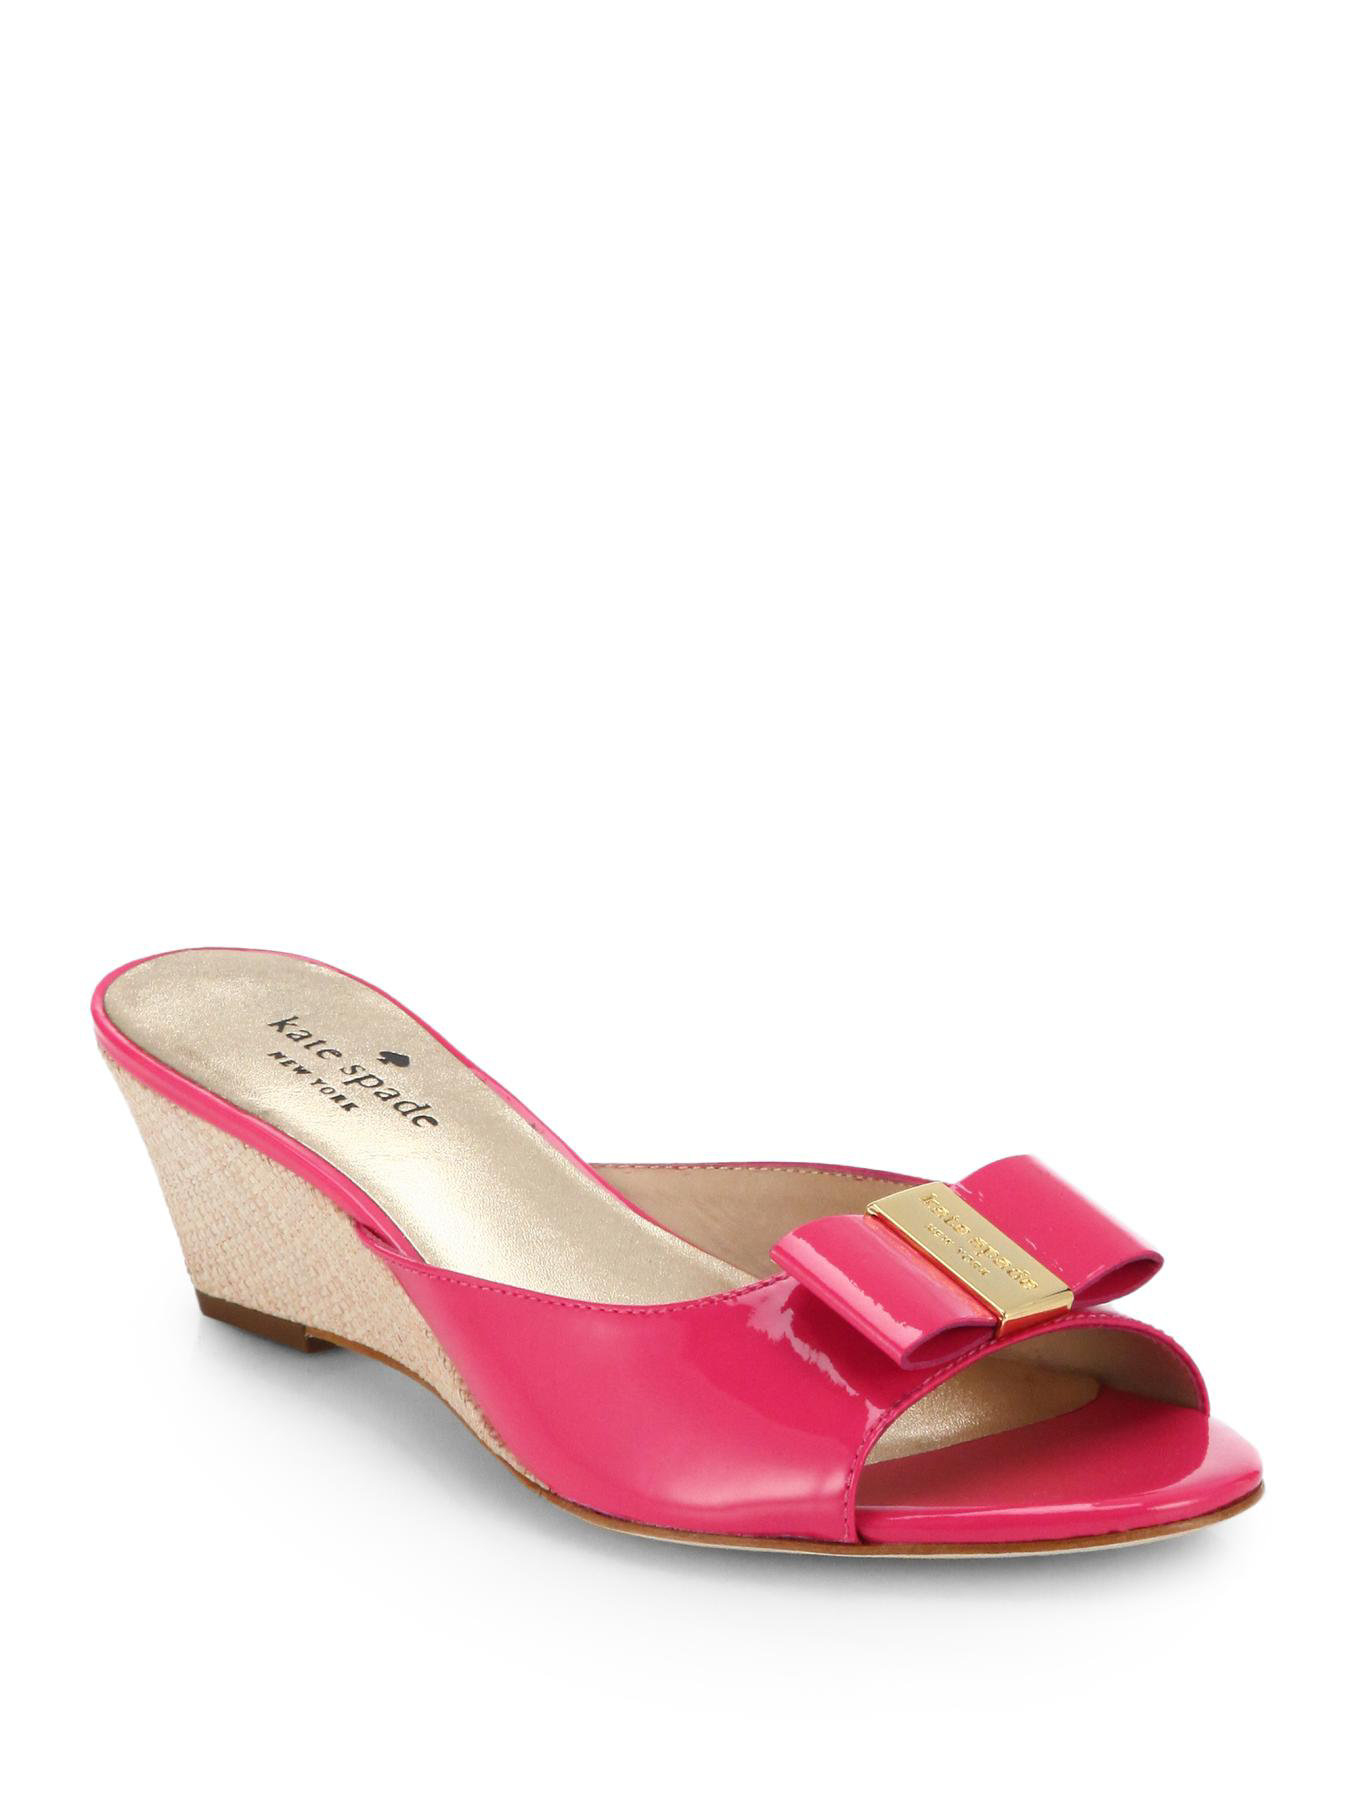 1f0ab081754 Lyst - Kate Spade Dixie Patent Leather Wedge Slides in Pink